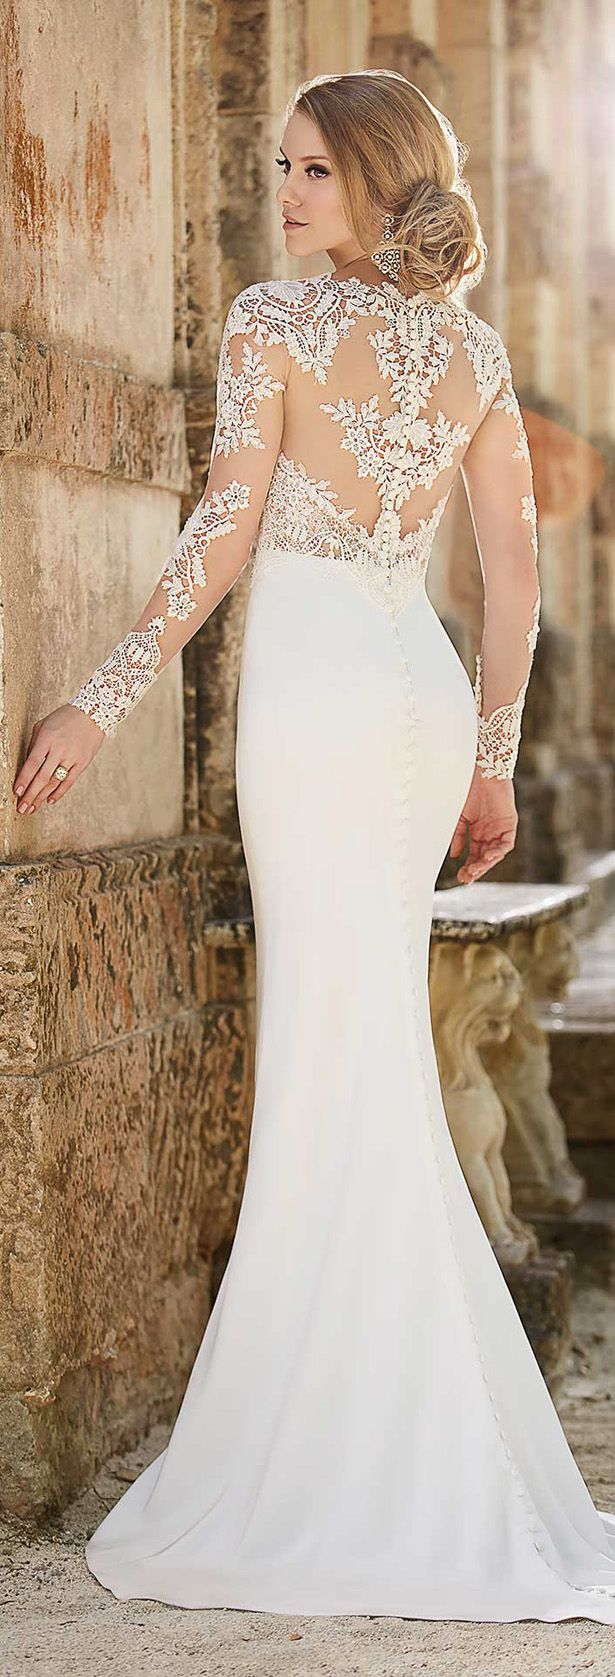 Sheer Back And Long Sleeve Antique Lace Top Wedding Dress With Covered On